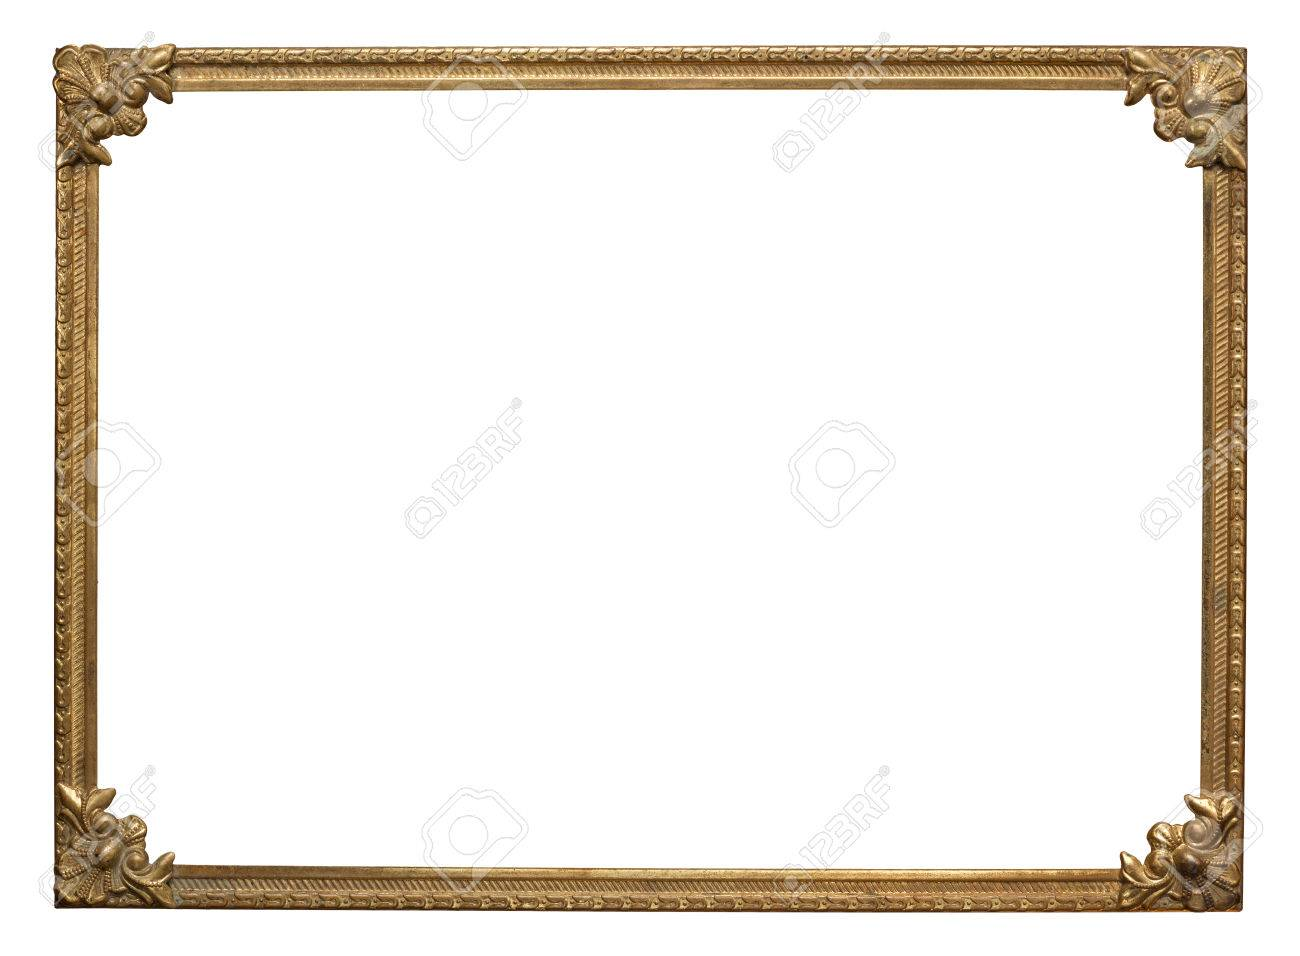 Ornate Vintage Metal Photo Frame Stock Photo, Picture And Royalty ...